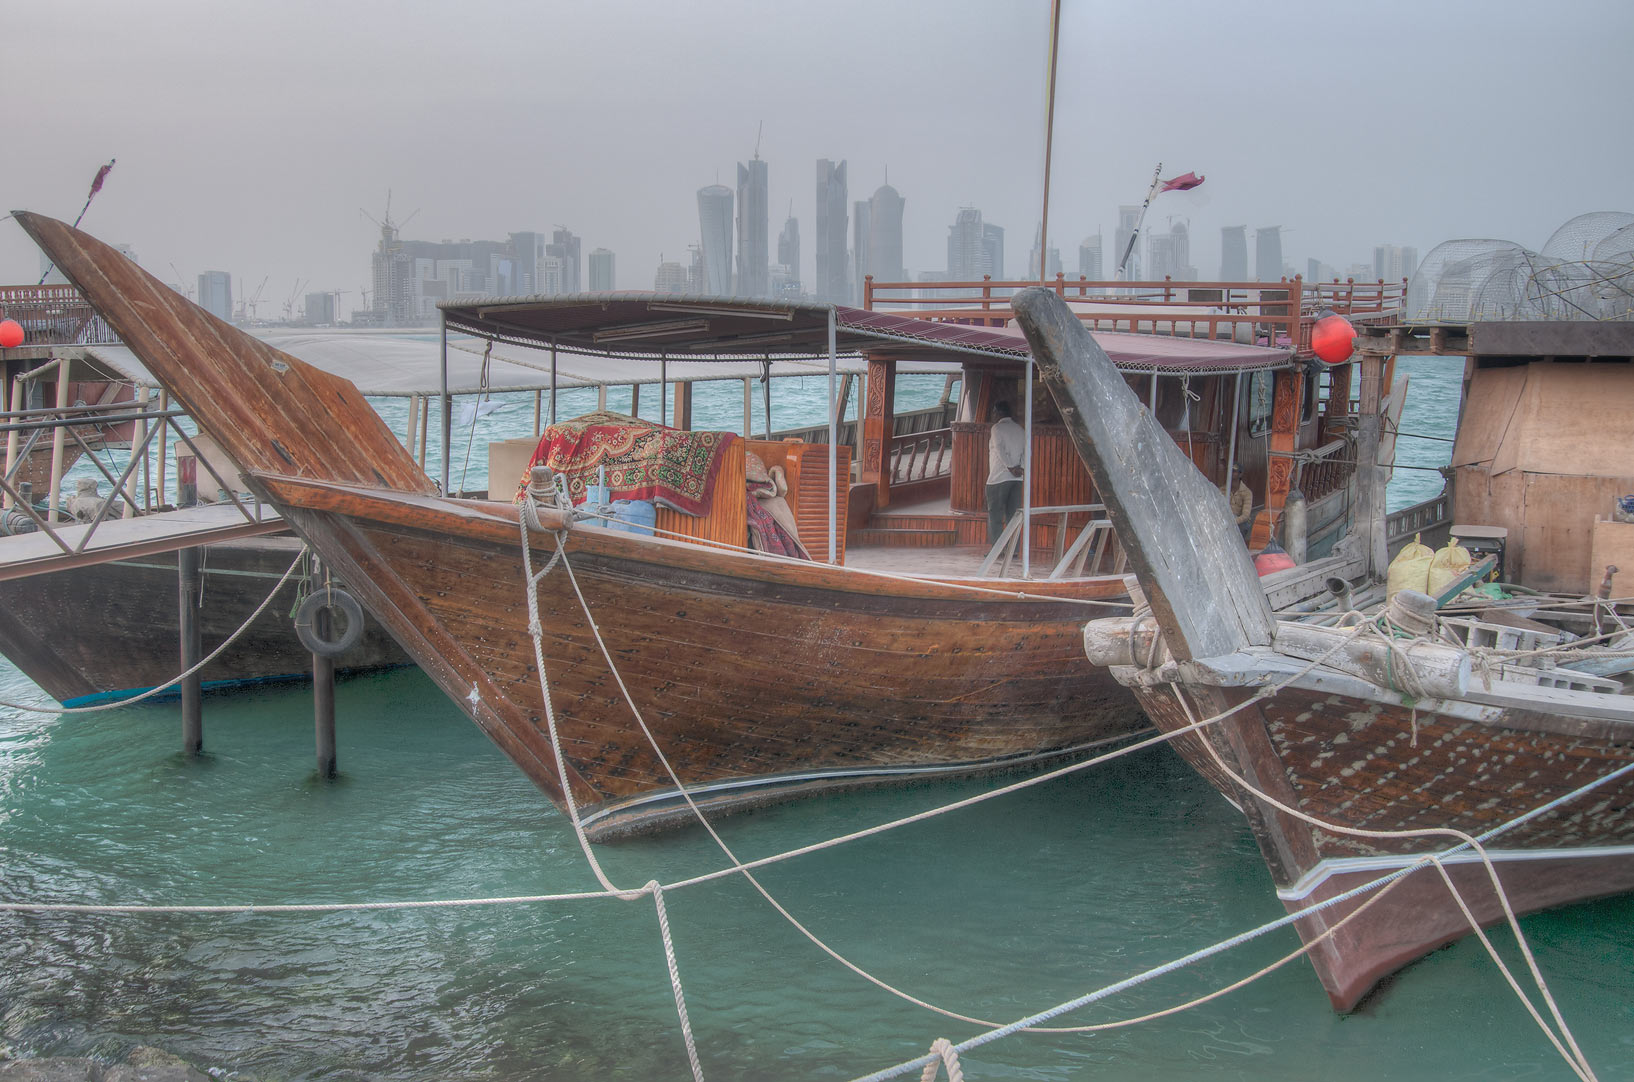 Dhow boats in fishing harbor, with West Bay in background. Doha, Qatar